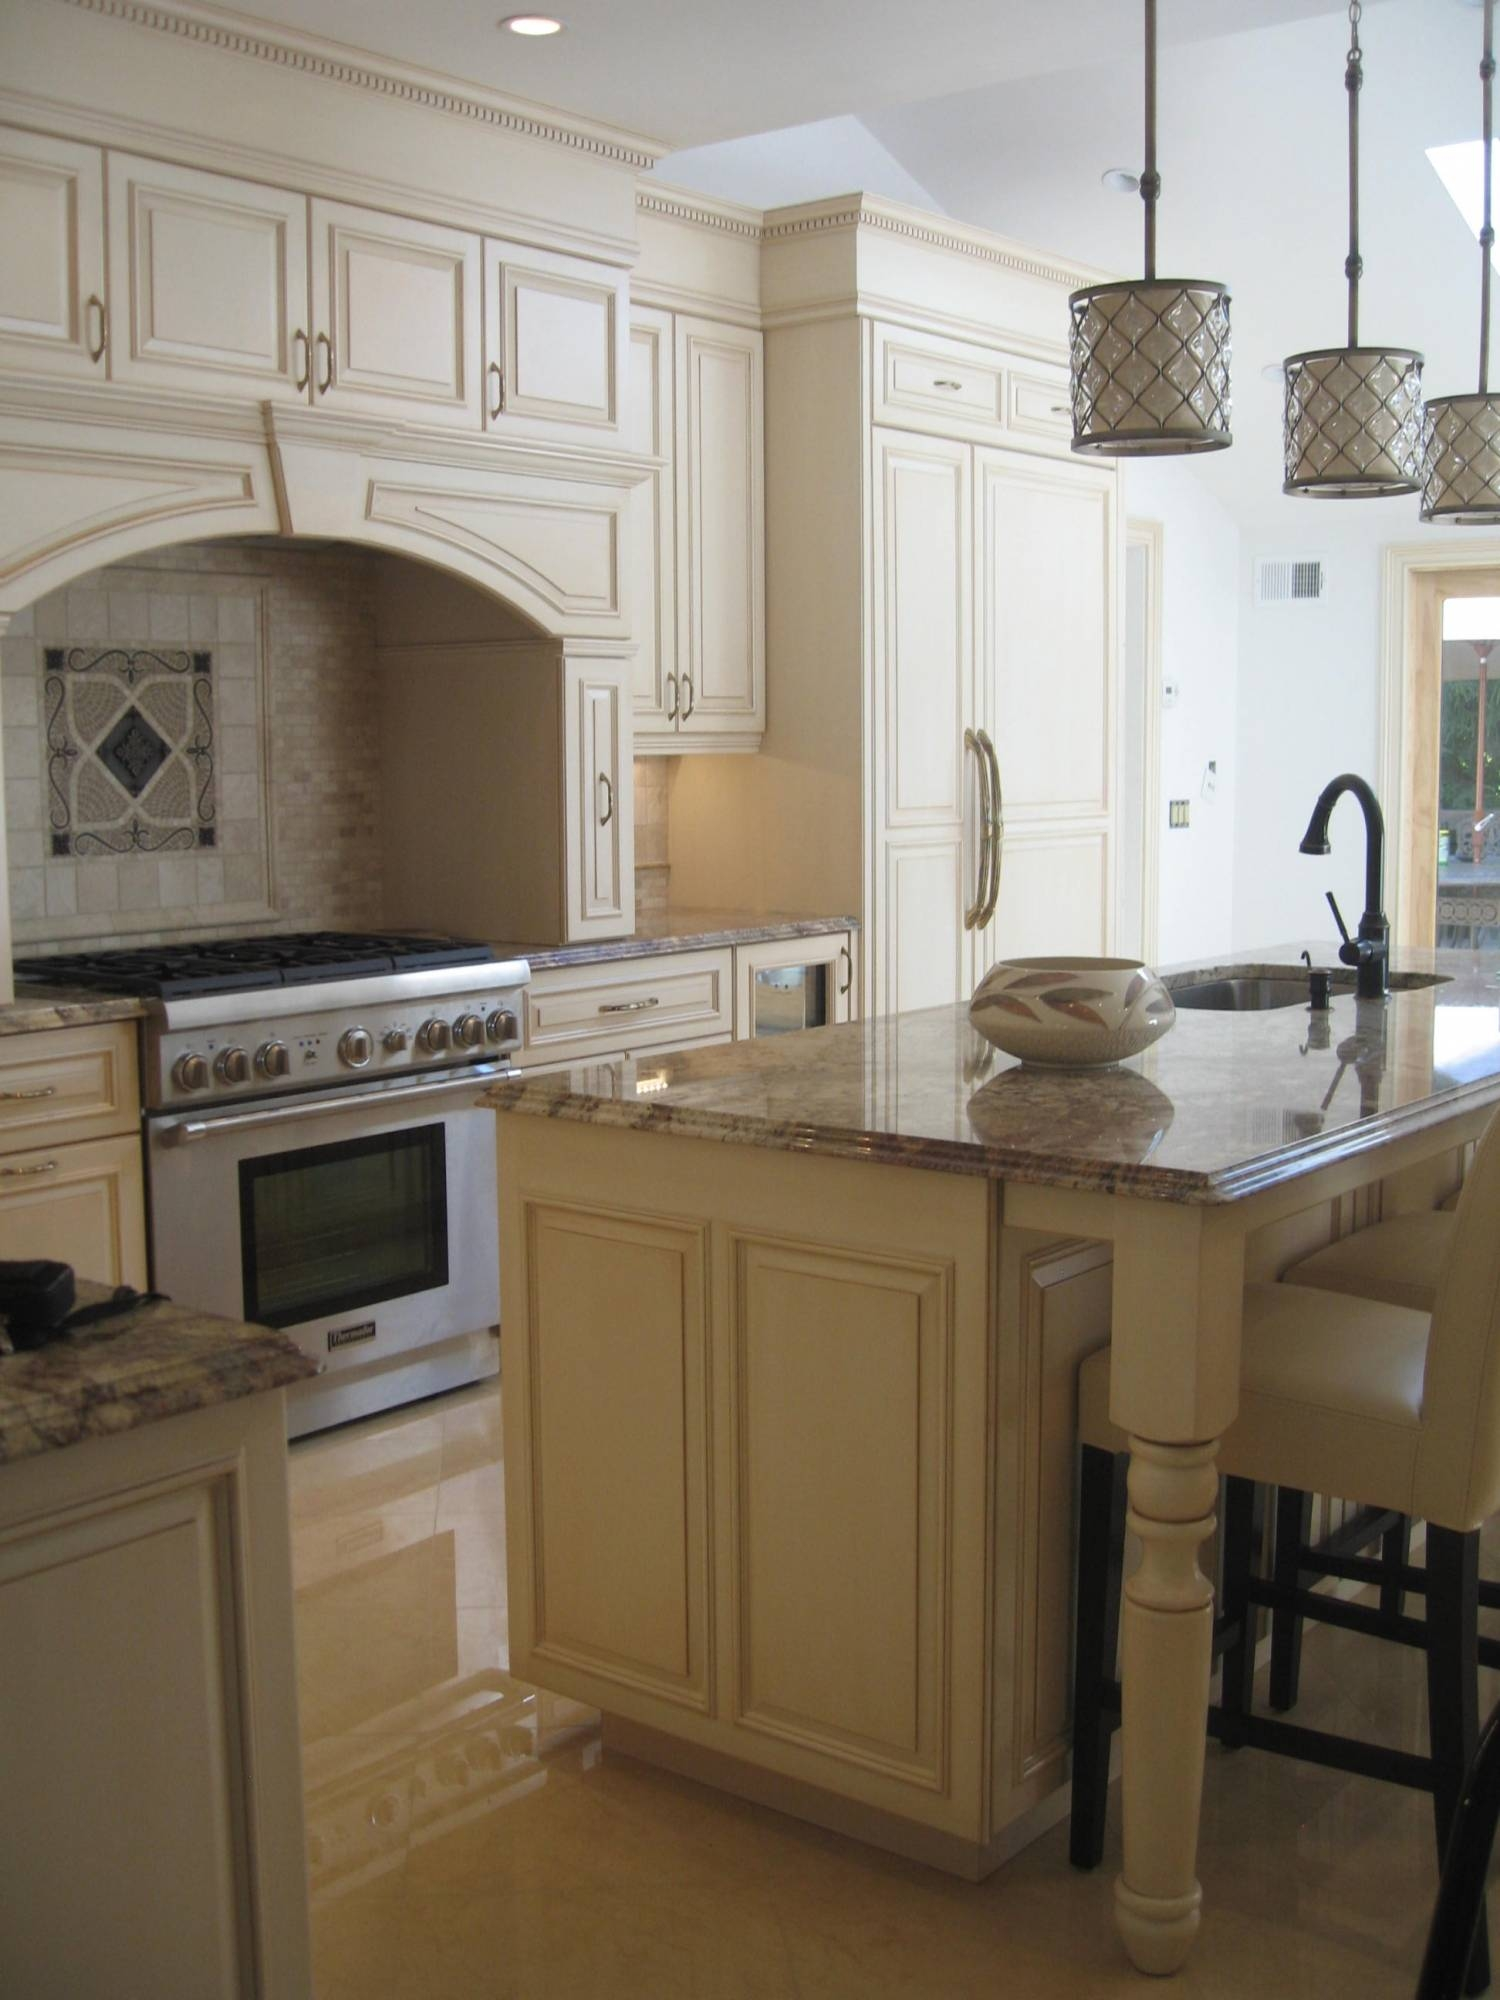 Single Pendant Lighting For Kitchen Island On With Hd Resolution Inside Kitchen Island Single Pendant Lighting (View 7 of 15)